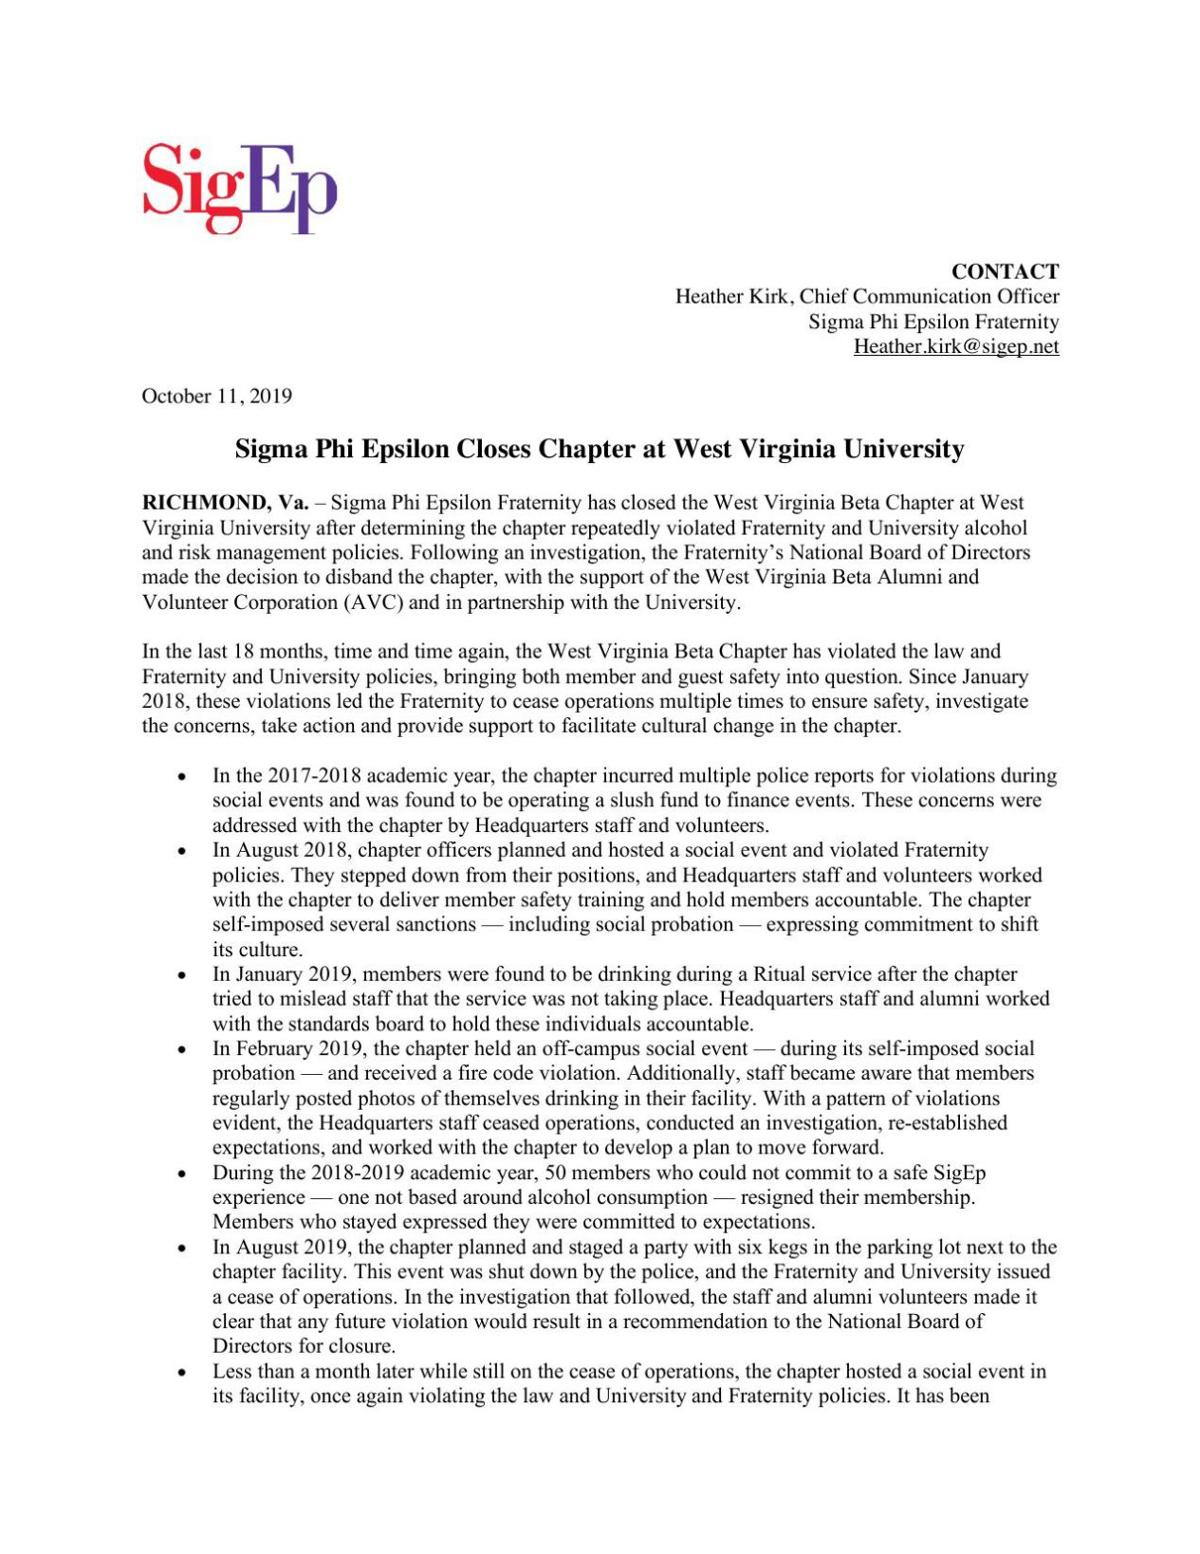 SigEp Oct. 15 news release